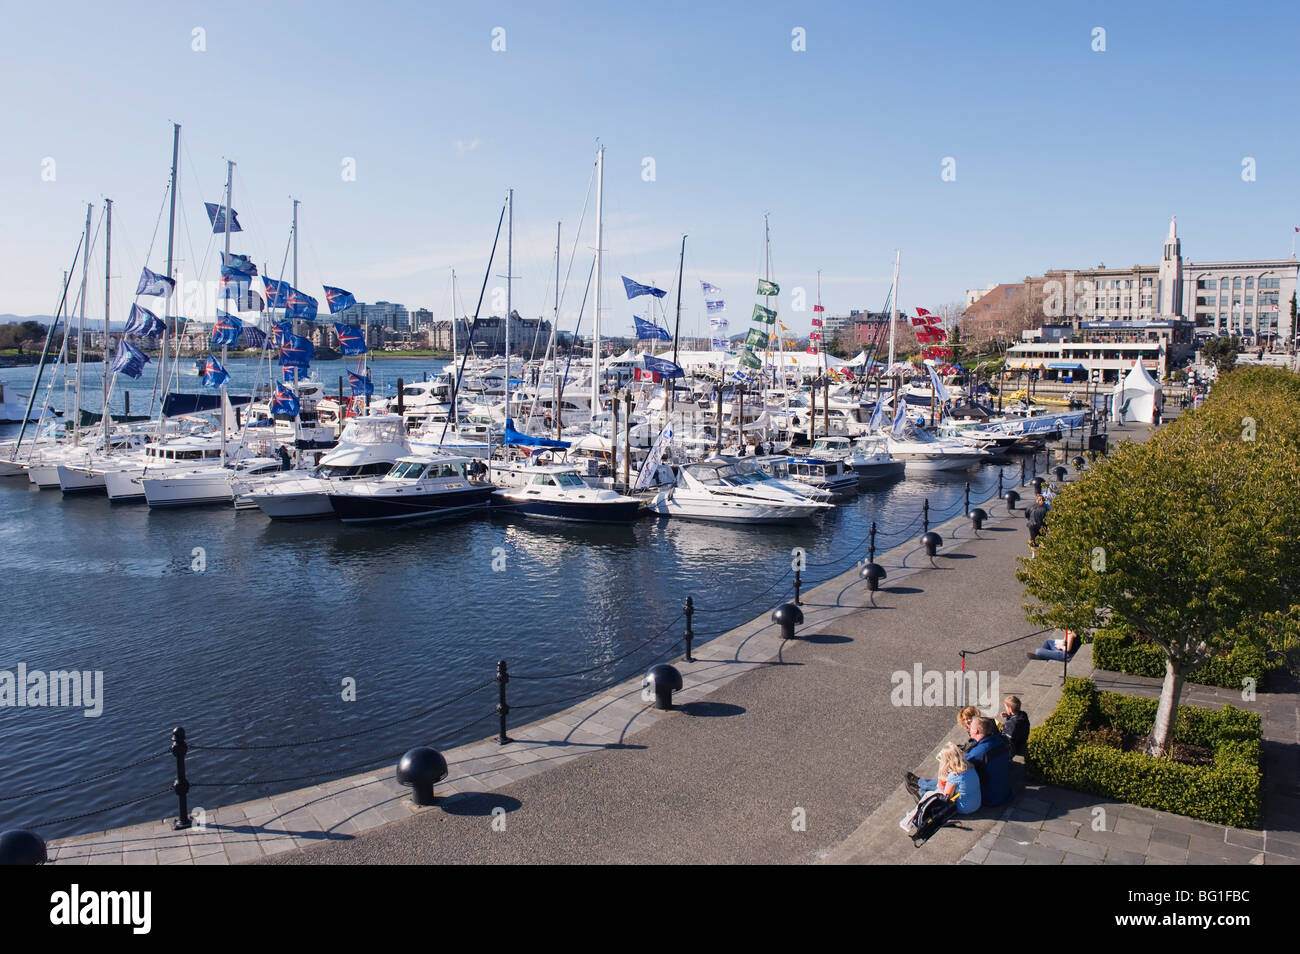 Boats on James Bay Inner Harbour, Victoria, Vancouver Island, British Columbia, Canada, North America - Stock Image